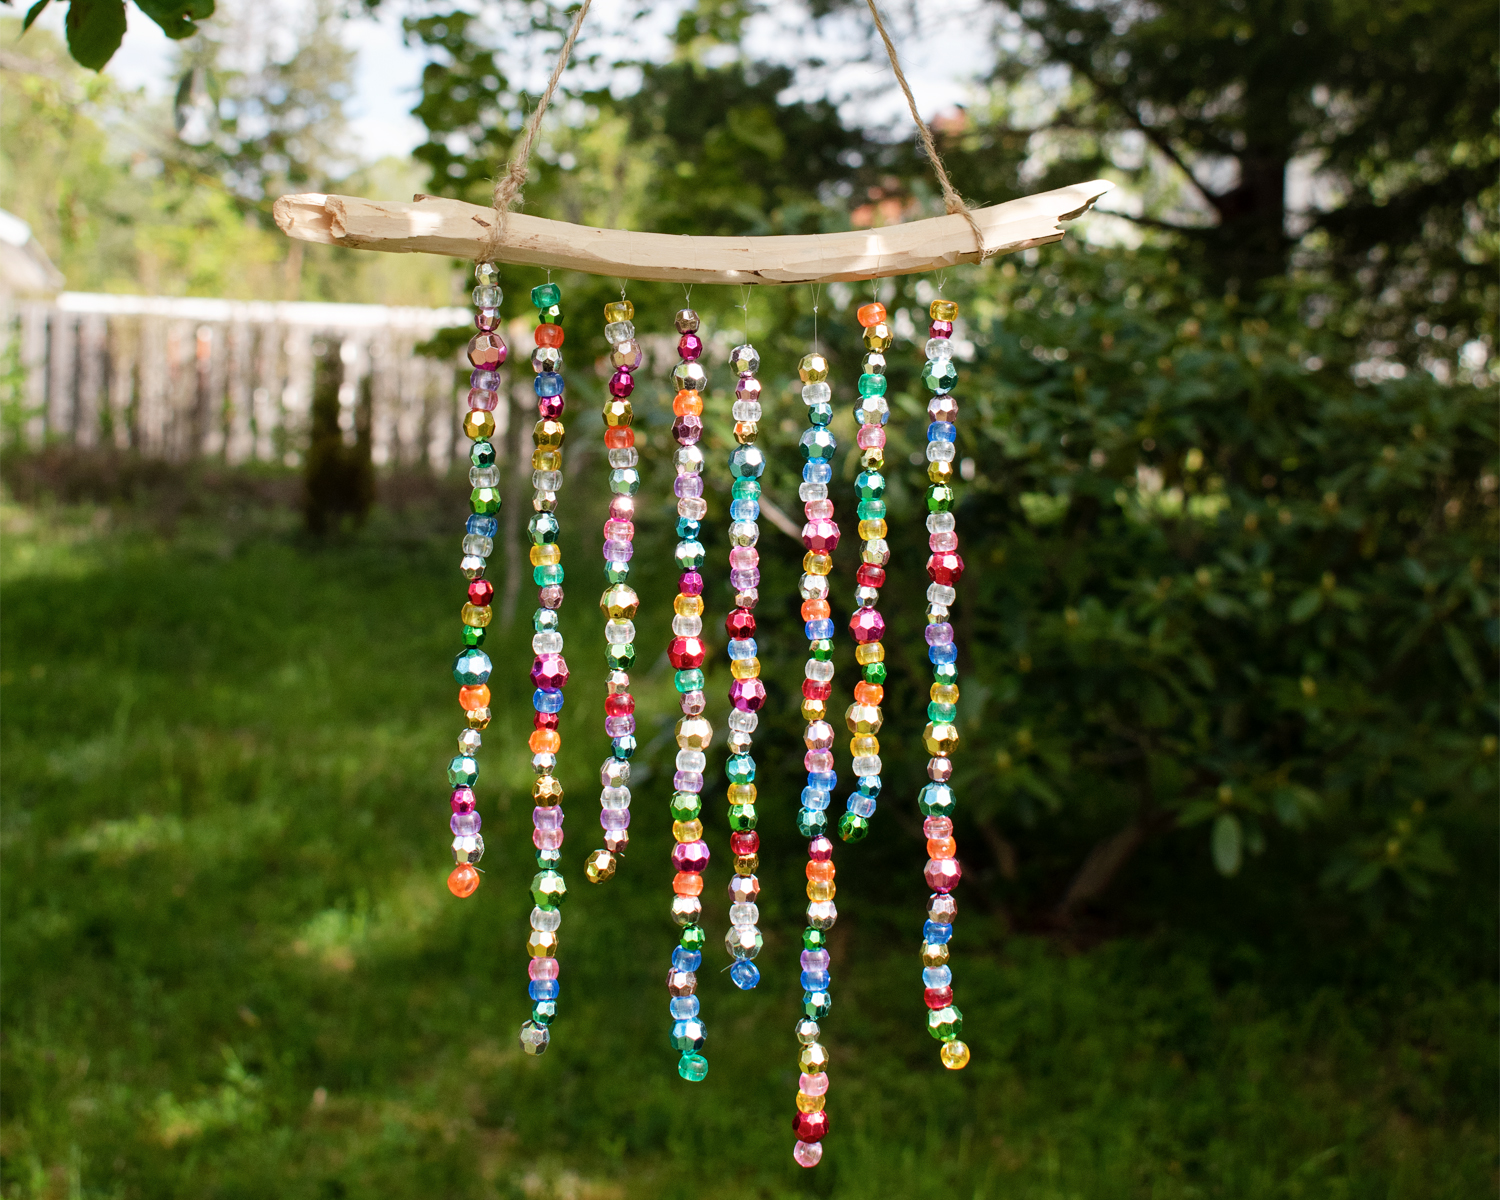 Sparkling wind chimes with pearls